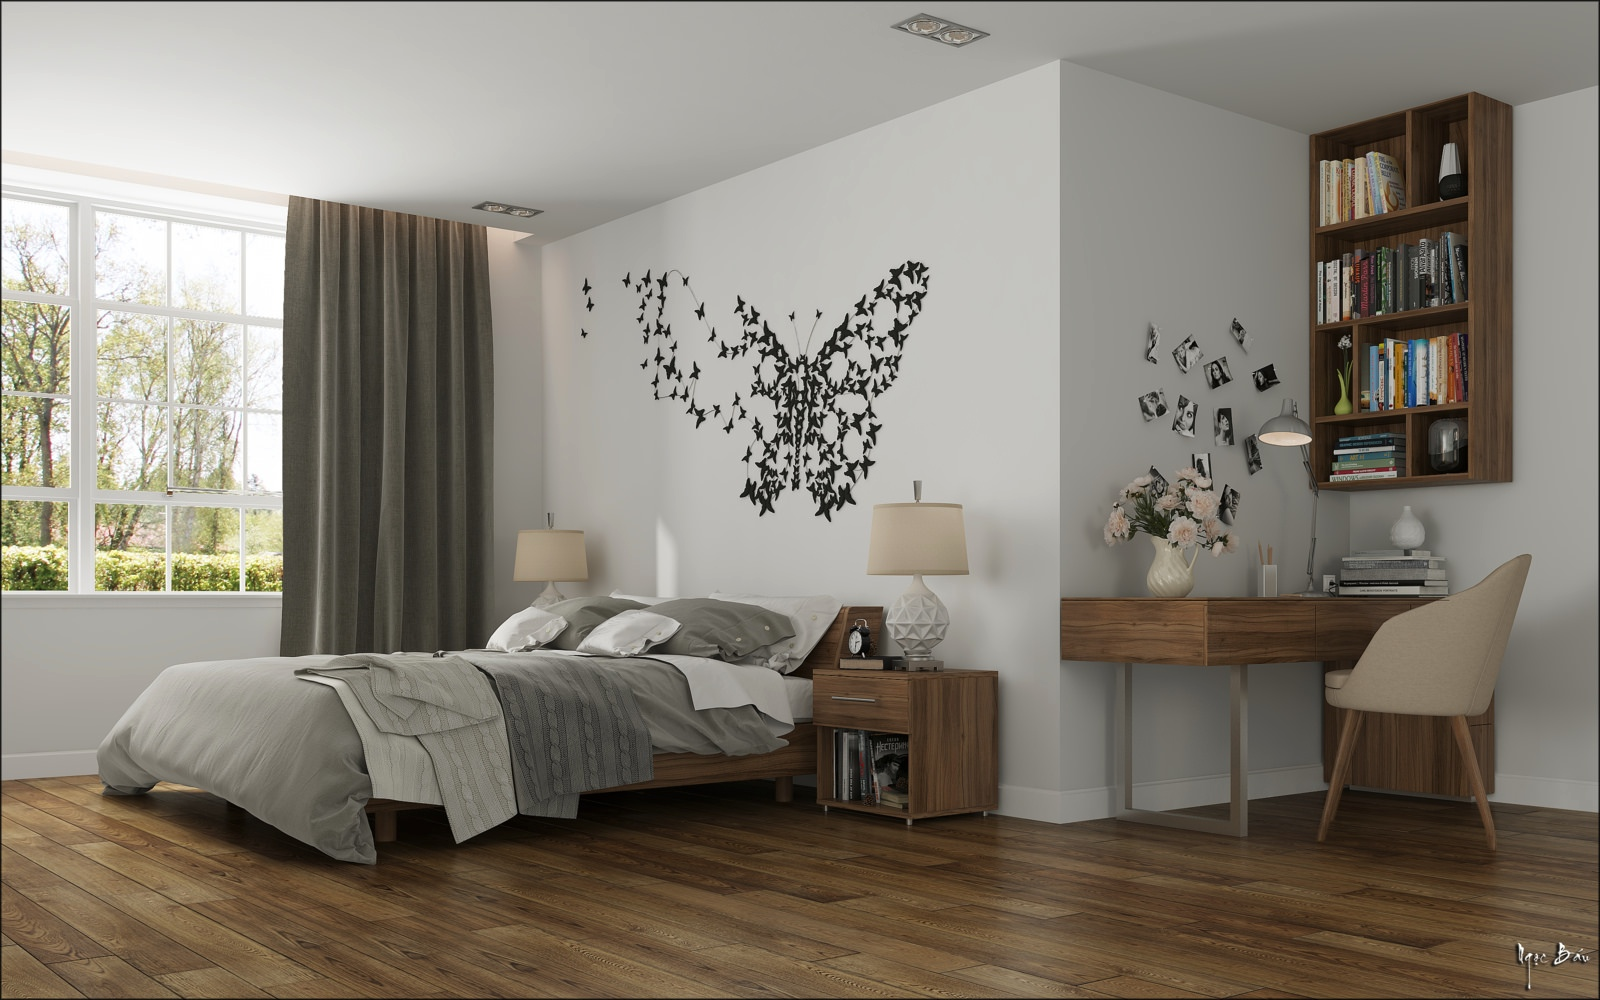 bedroom butterfly wall art interior design ideas. Black Bedroom Furniture Sets. Home Design Ideas